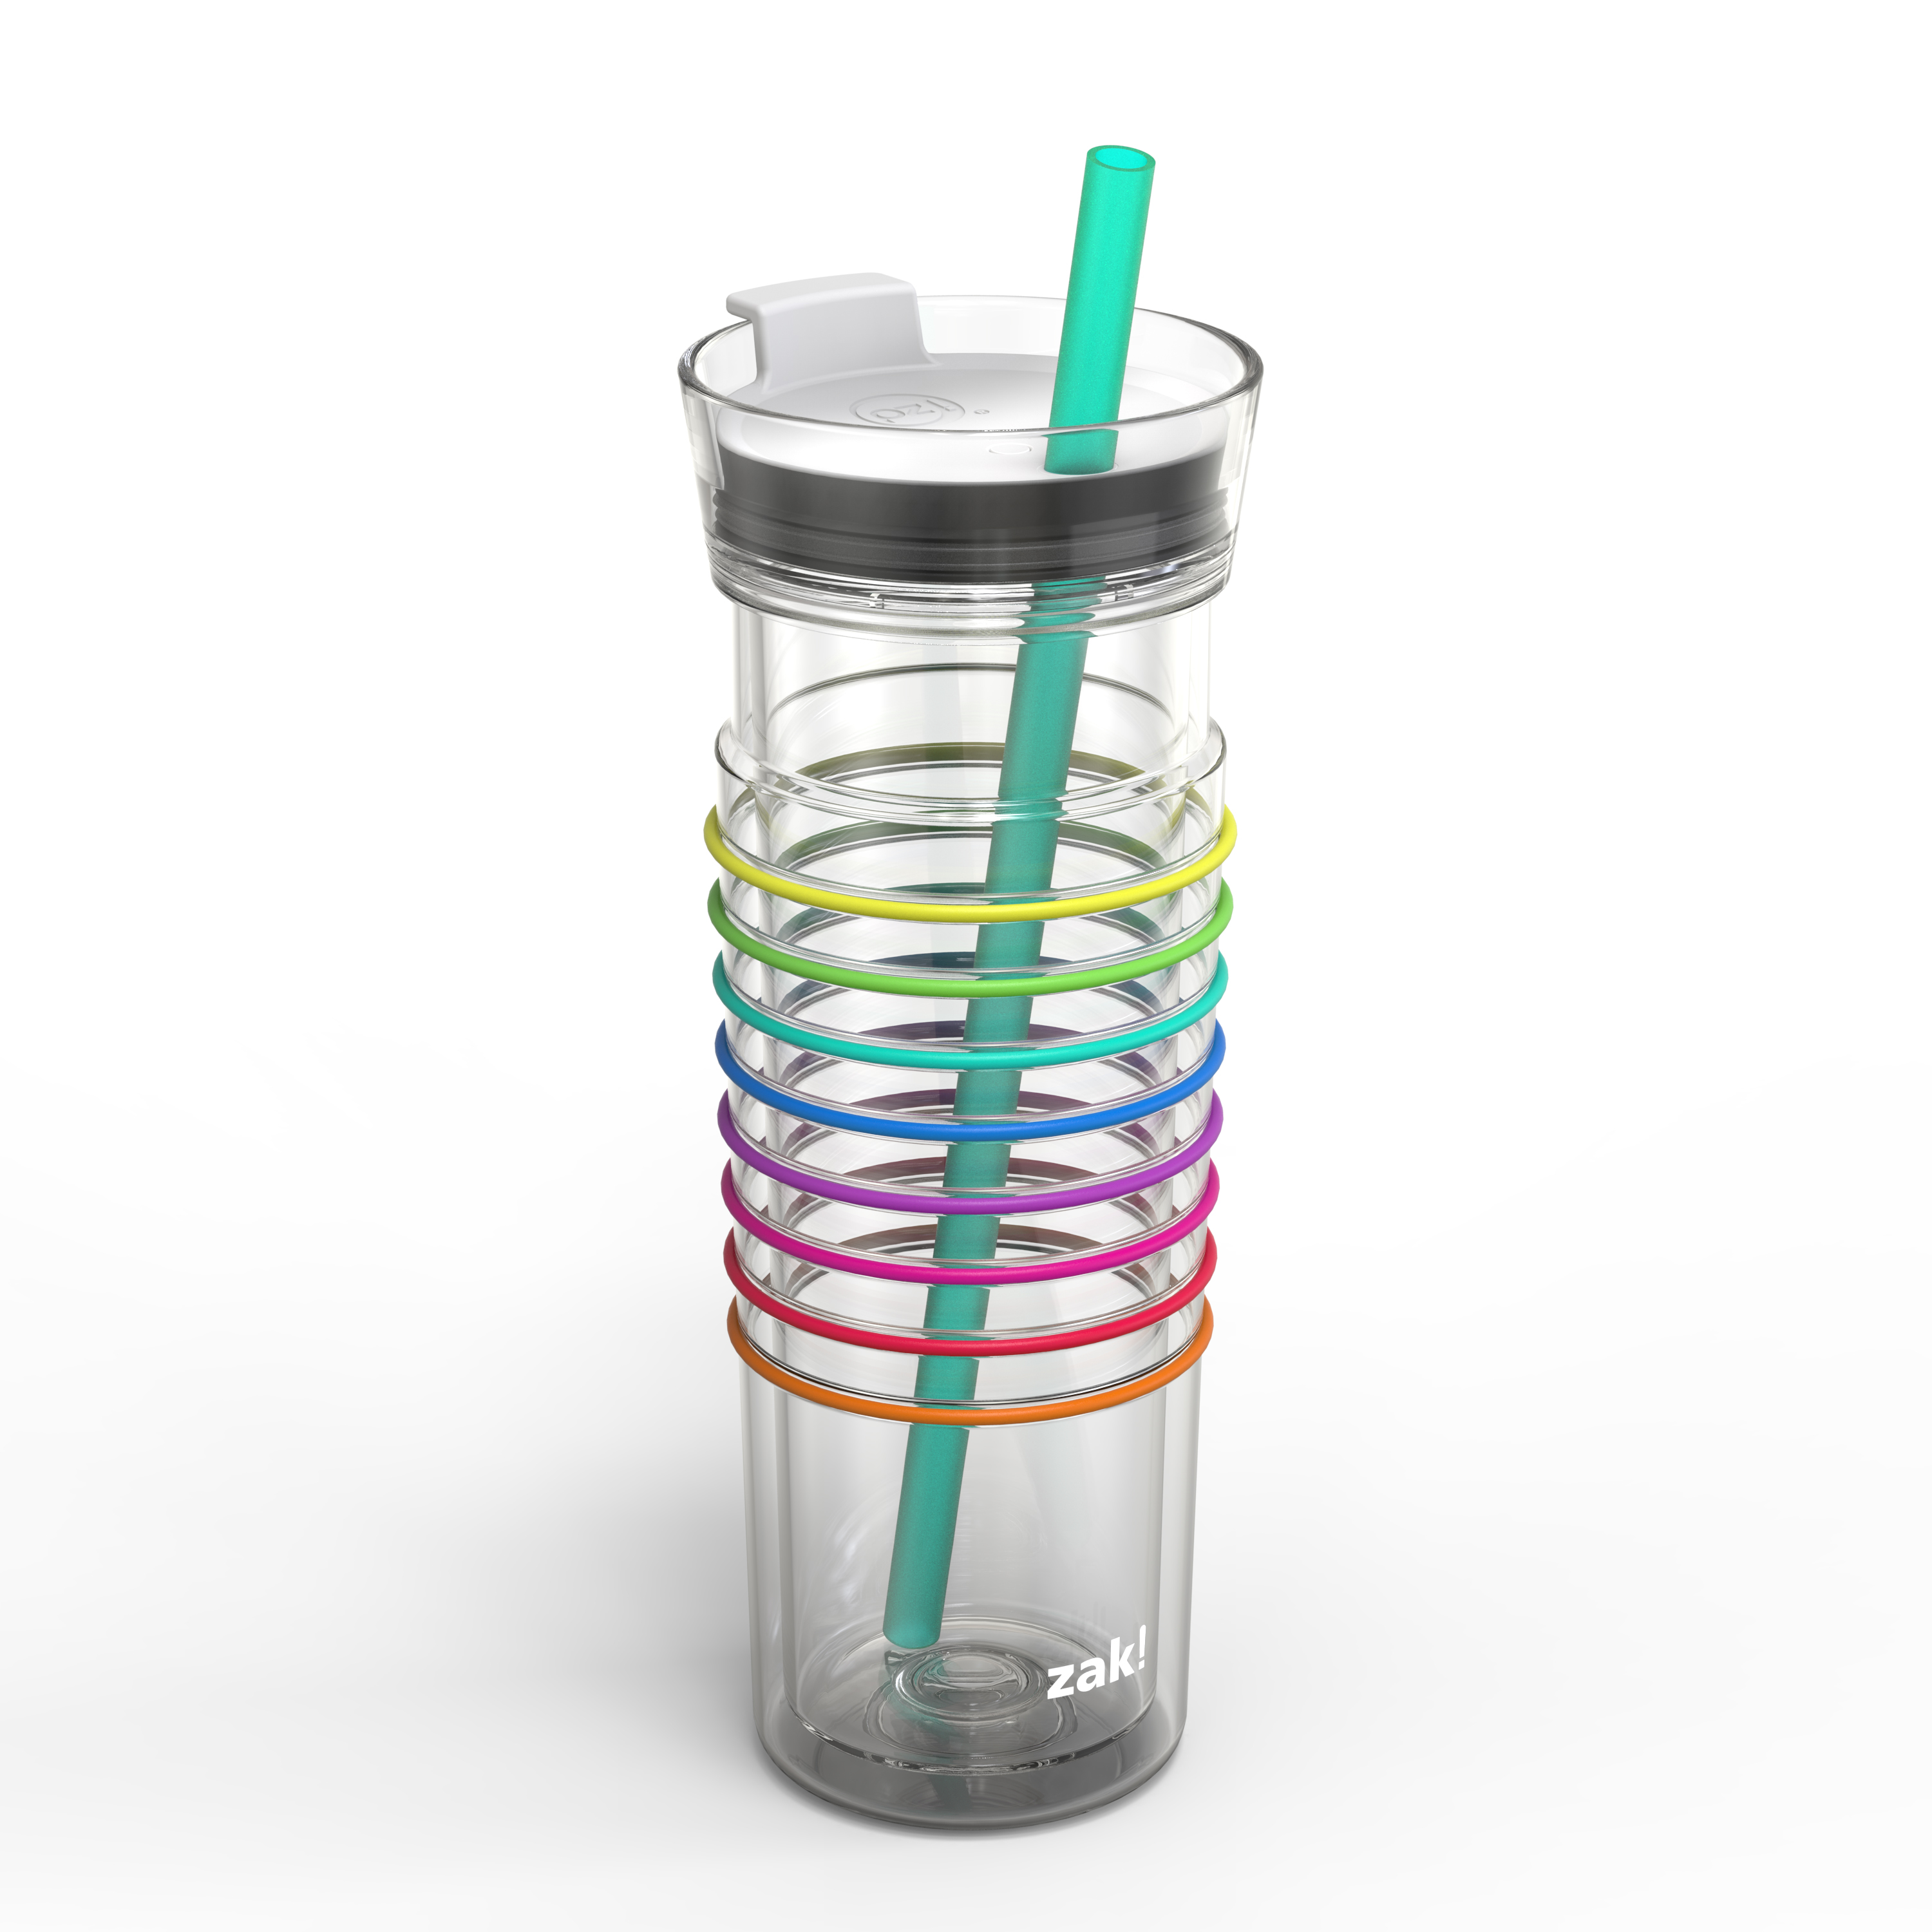 Zak! Hydration 20 ounce Insulated Tumbler, Clear slideshow image 6